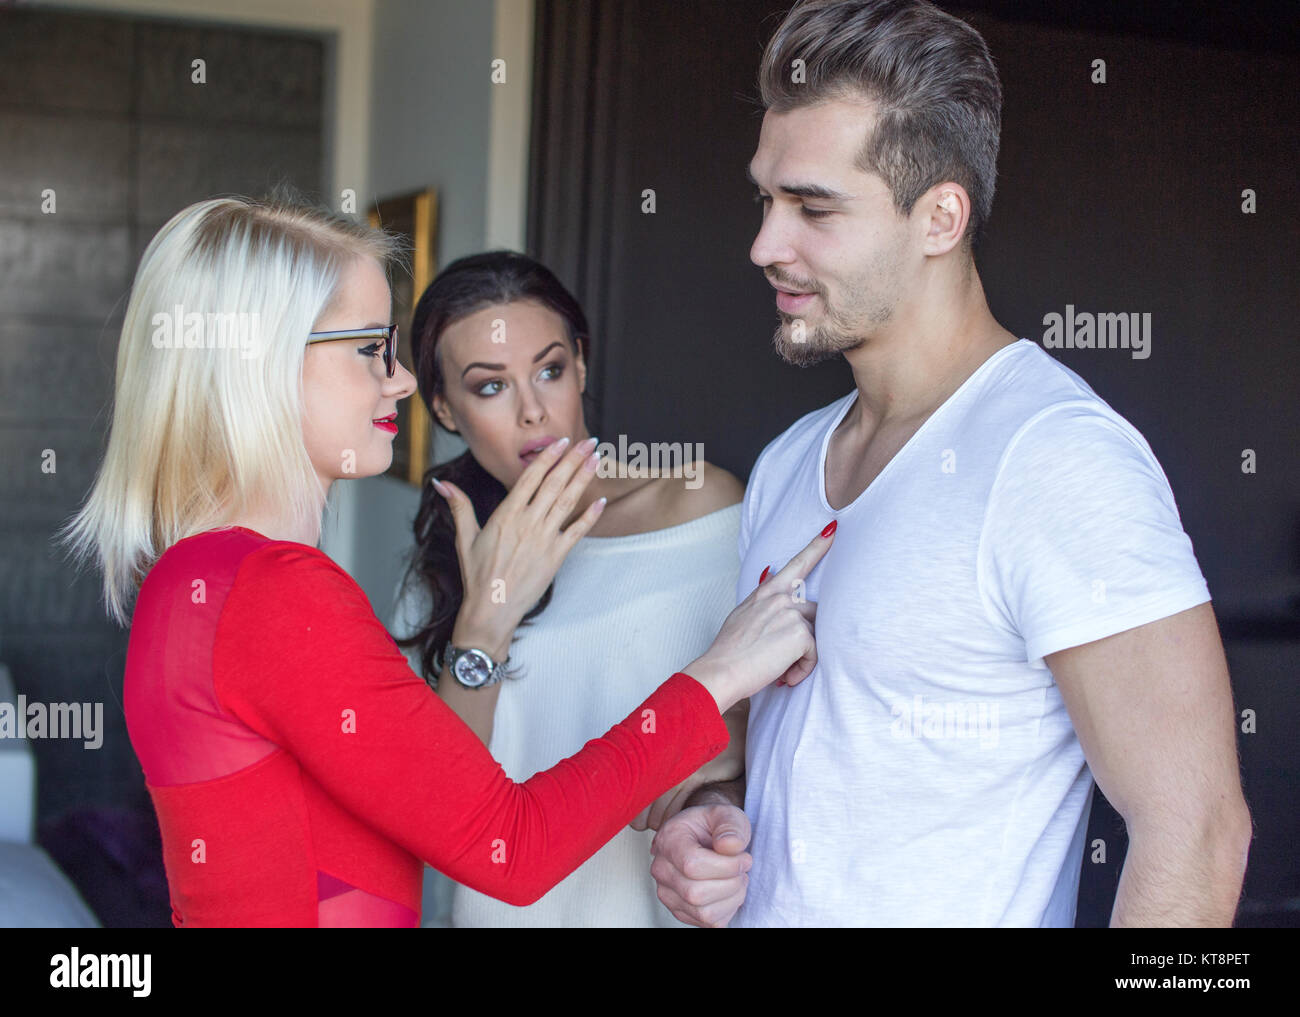 Blonde woman flirting with disloyal man, girlfriend in shock, indoors - Stock Image